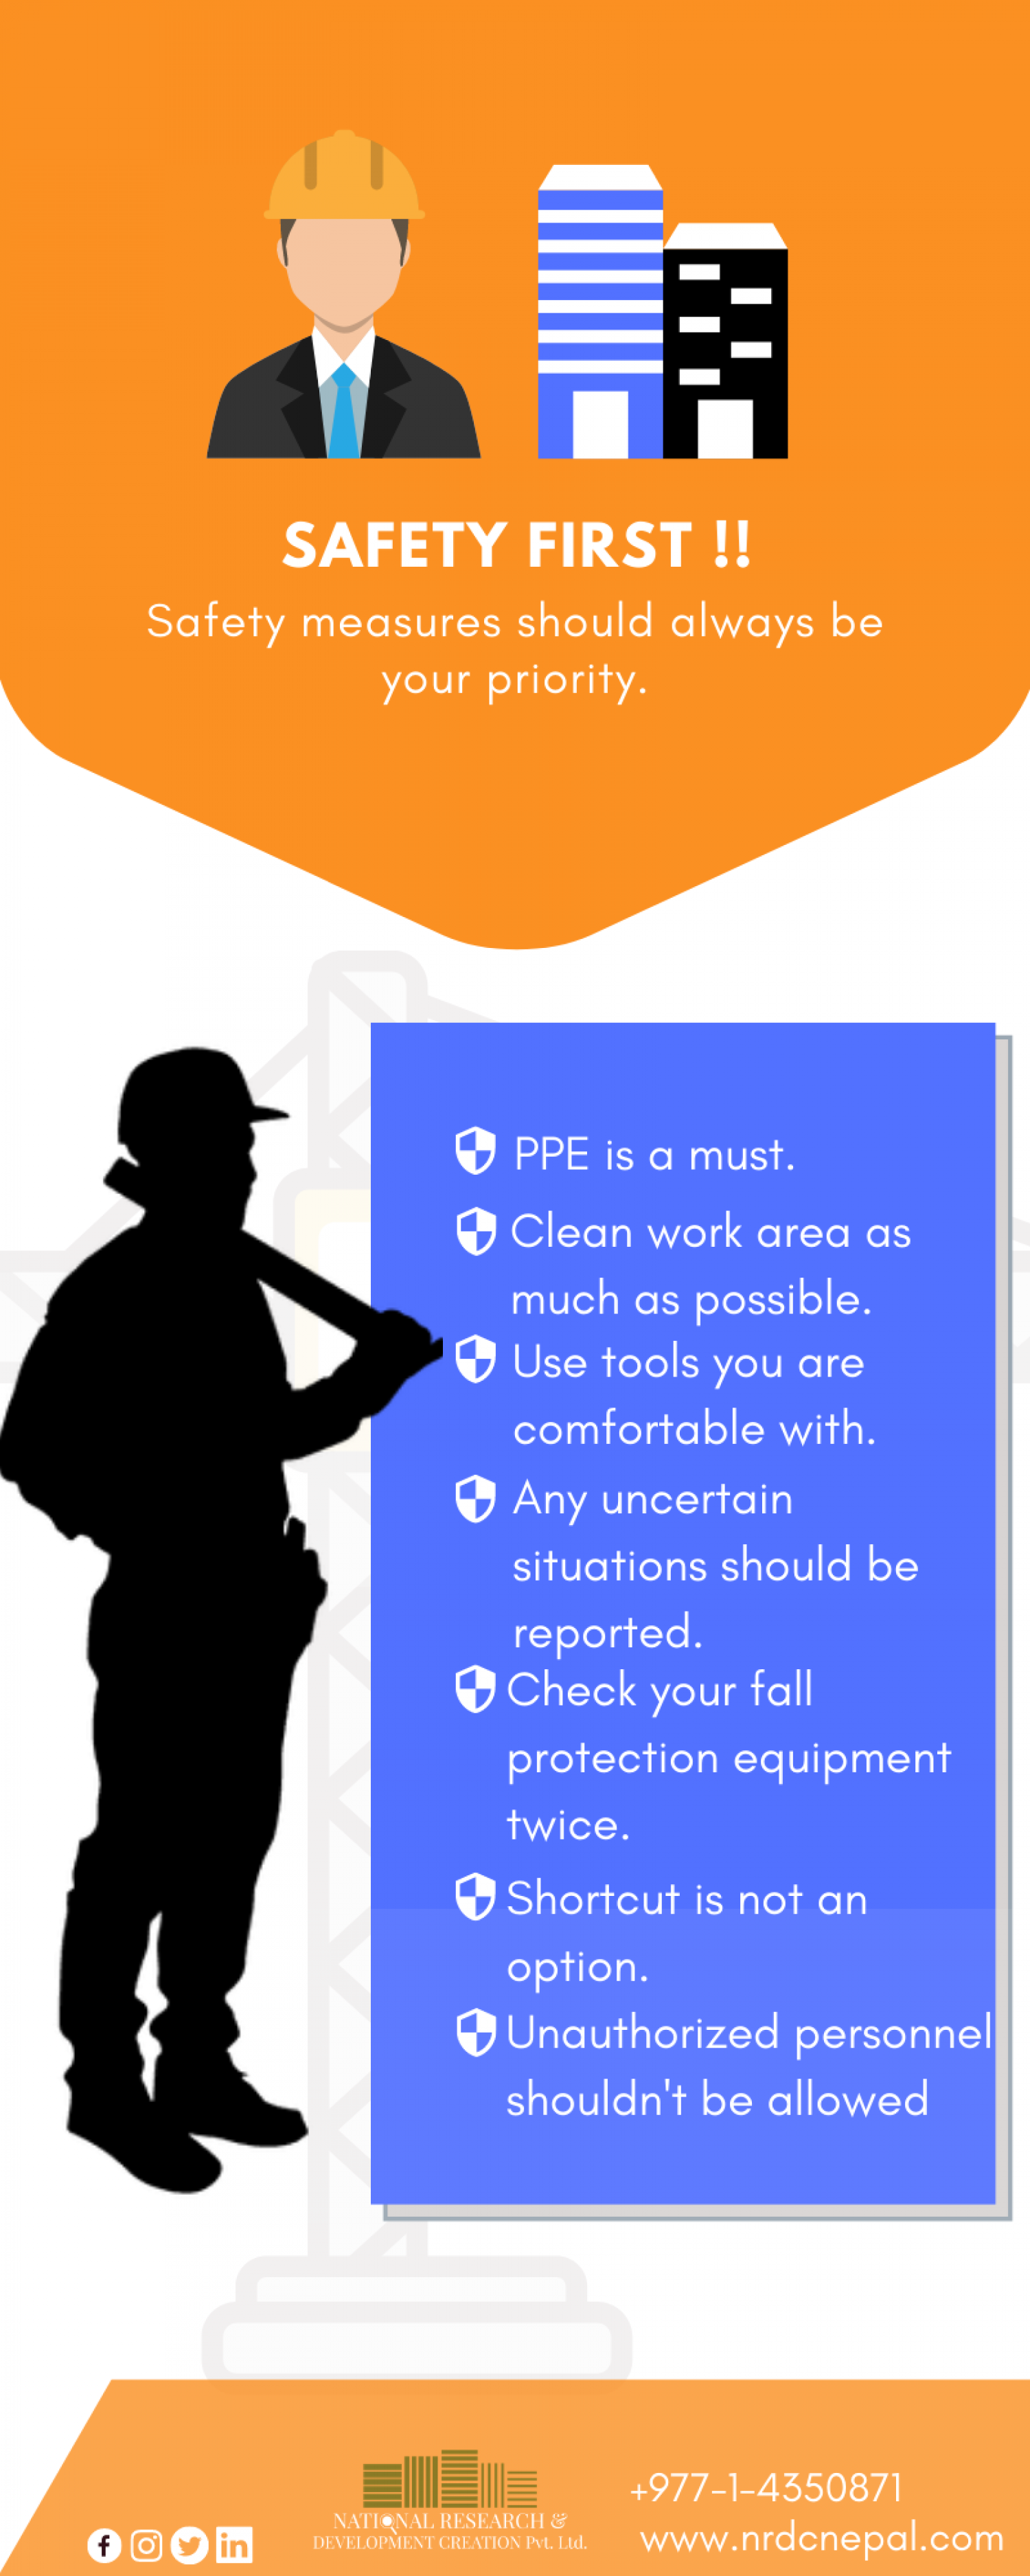 Construction Safety Measures - NRDC Nepal  Infographic